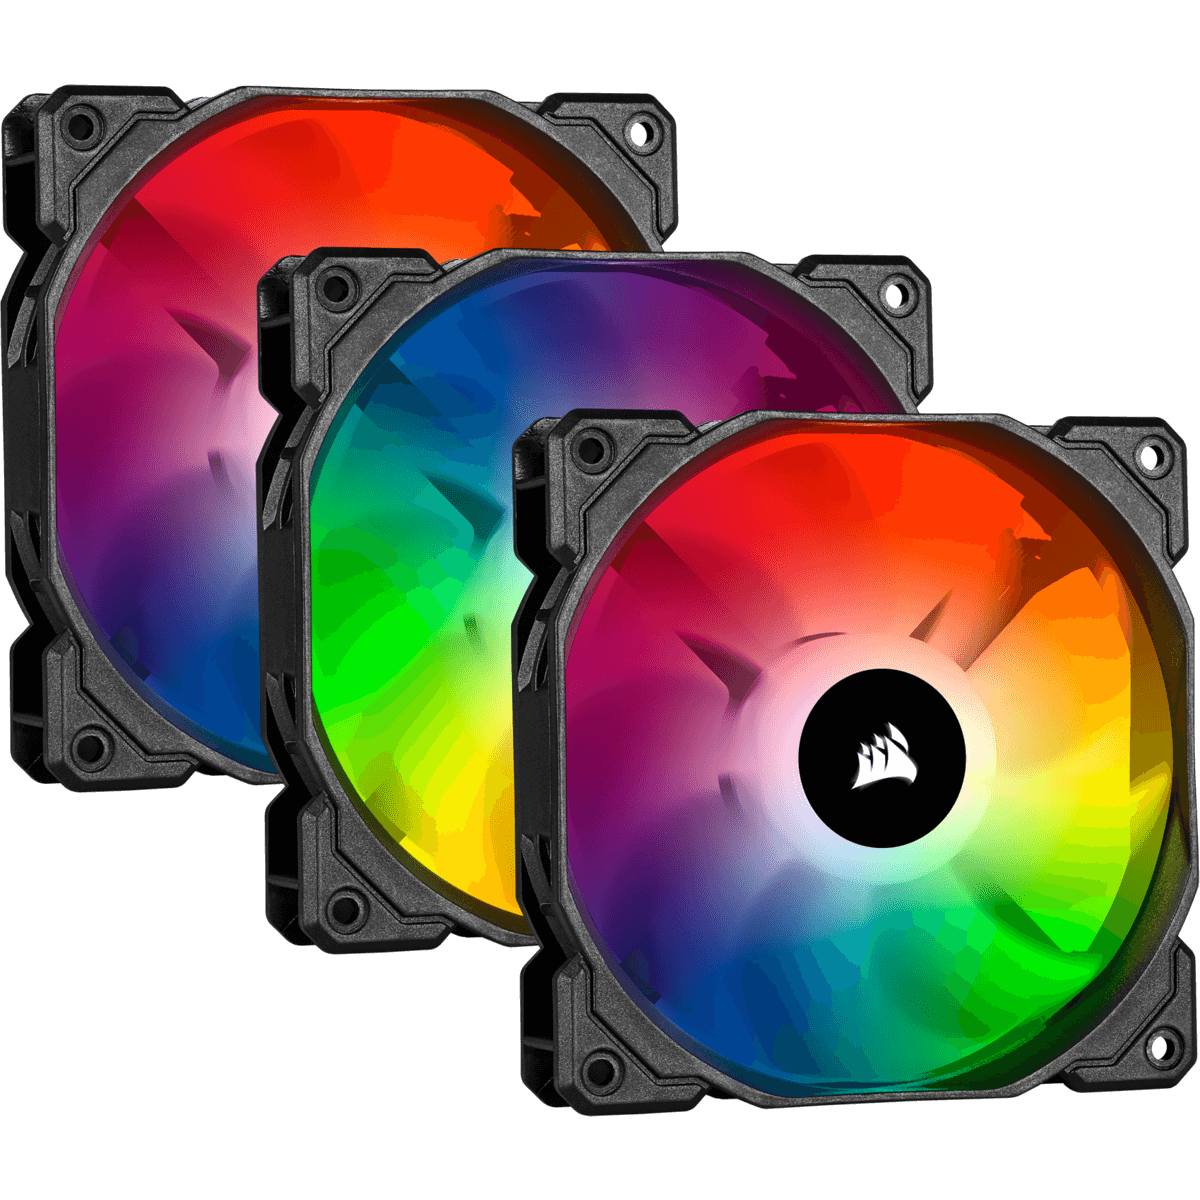 Kit Fan com 3 Unidades Corsair iCue SP120, RGB Pro, 120mm, CO-9050094-WW